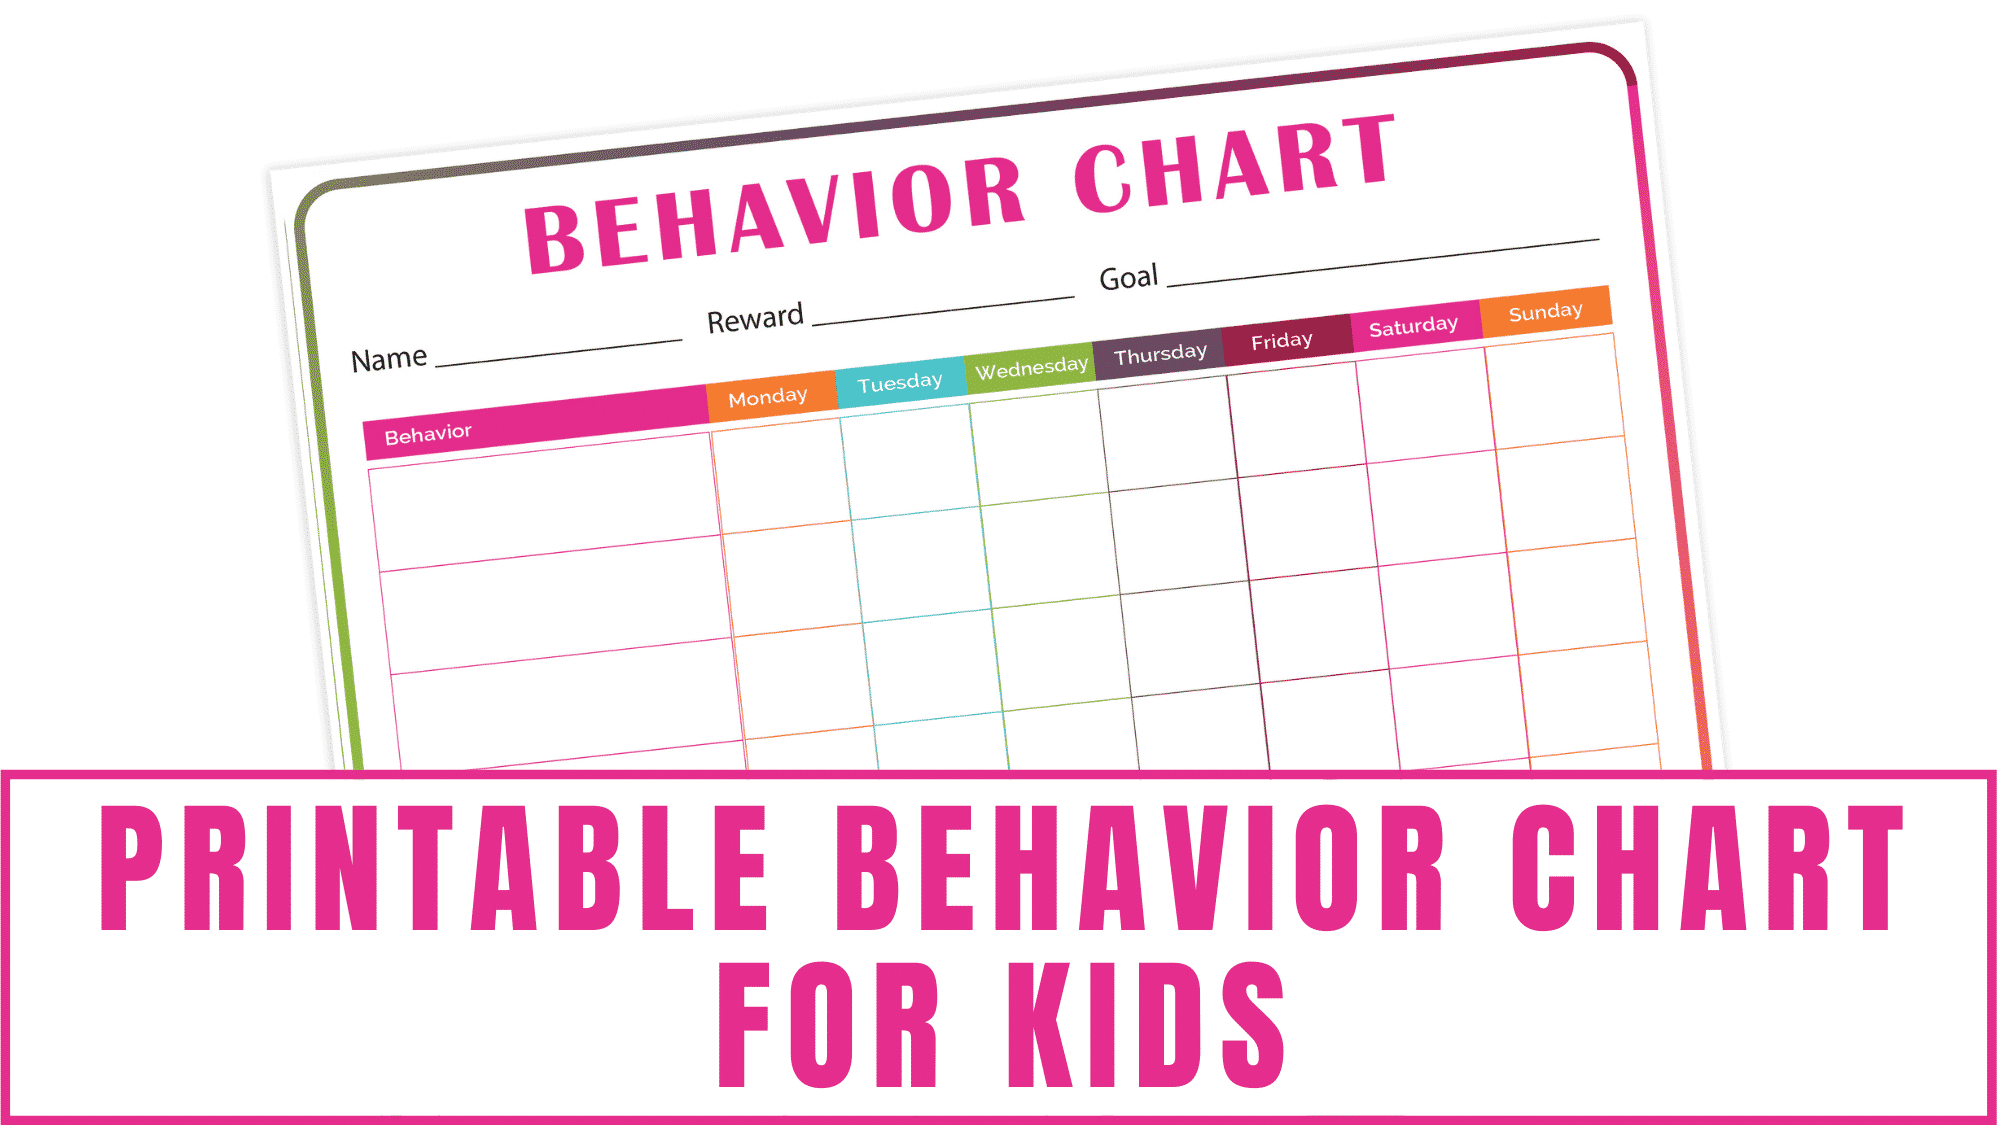 If you want a fun way to encourage your kids to change their behavior or routine then you should implement this printable behavior chart for kids. This printable behavior chart allows you record and track specific behaviors or chores you want your kid to do. It also allows you to record a reward for your kid once they reach their goal.